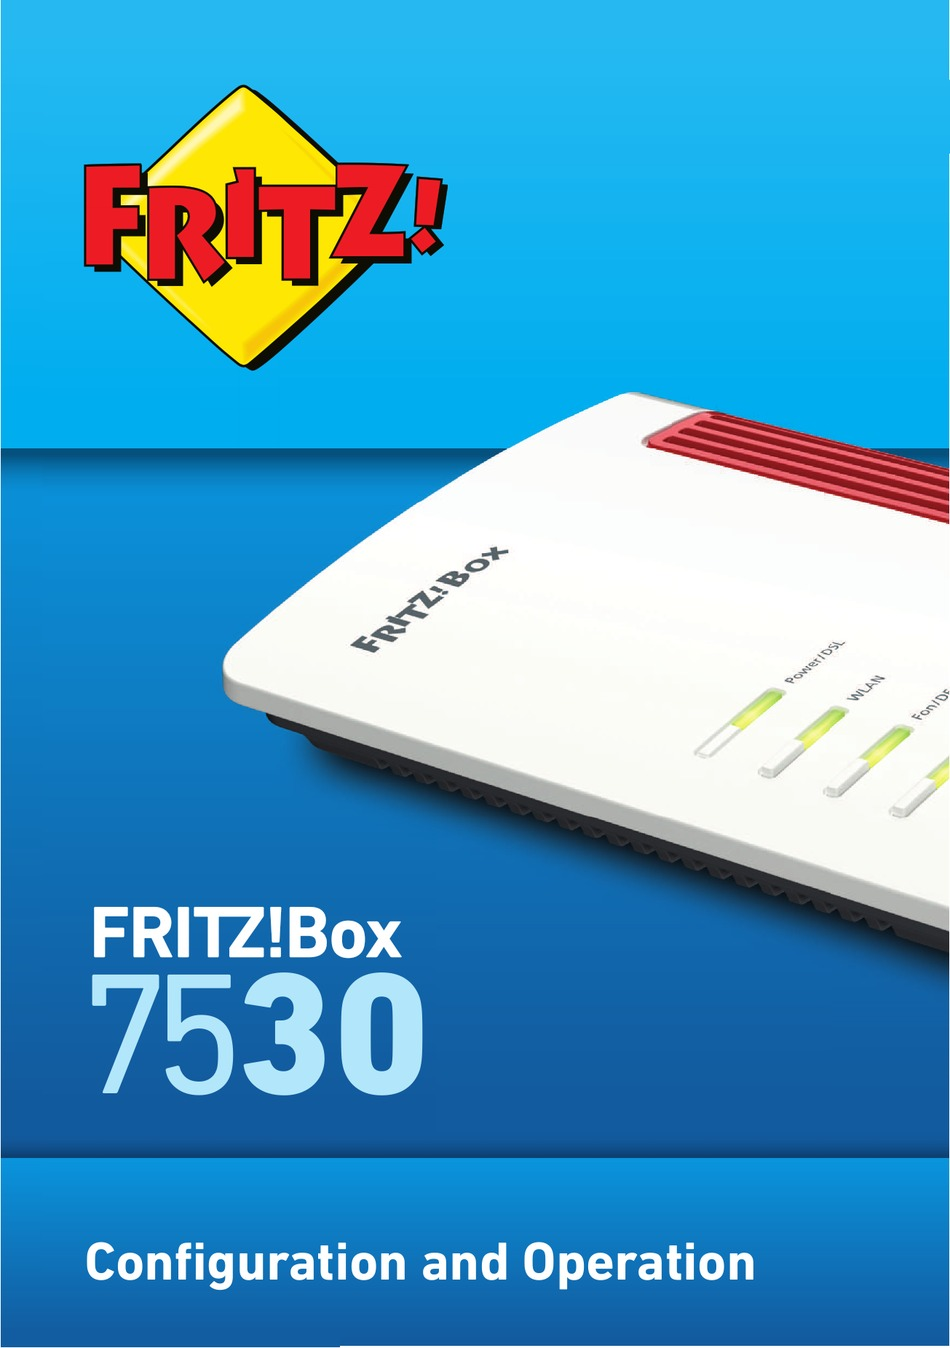 AVM FRITZBOX 20 CONFIGURATION AND OPERATION Pdf ...